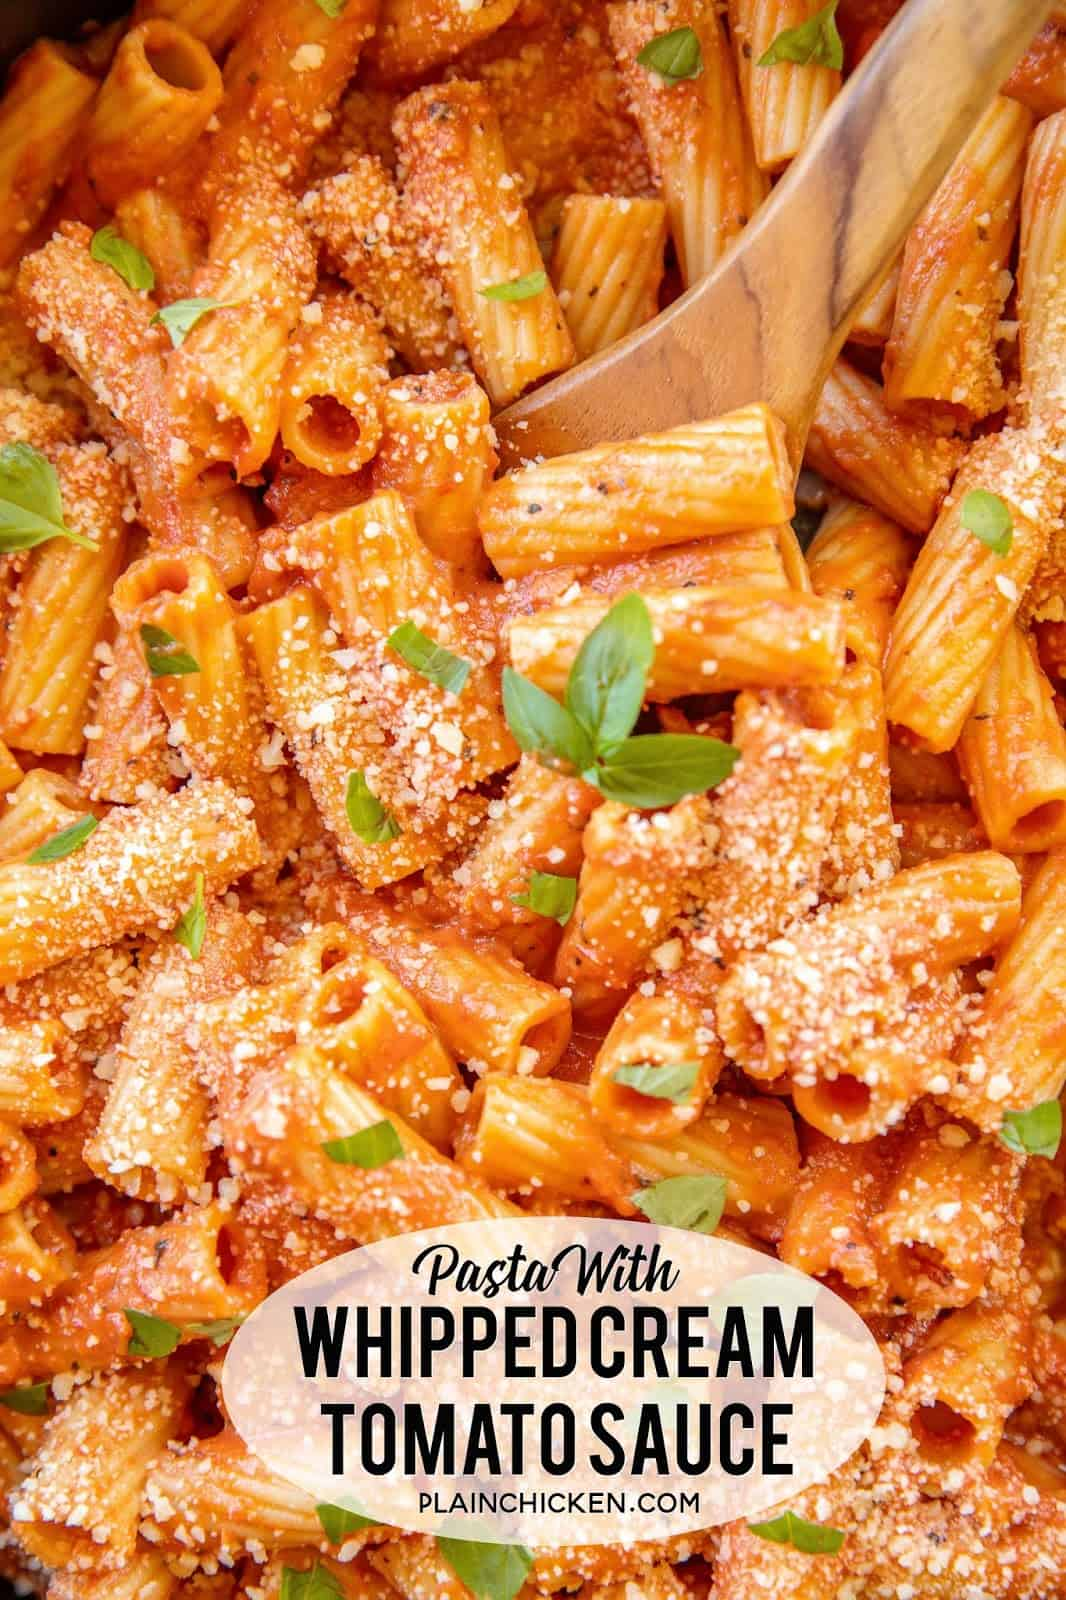 Pasta with Whipped Cream Tomato Sauce - better than any restaurant!! Pancetta, crushed tomatoes, shallots, garlic, pepper, sugar, rigatoni, whipped cream, basil and parmesan. Ready to eat in about 20 minutes! SO easy and everyone LOVES this yummy pasta! #pasta #quick